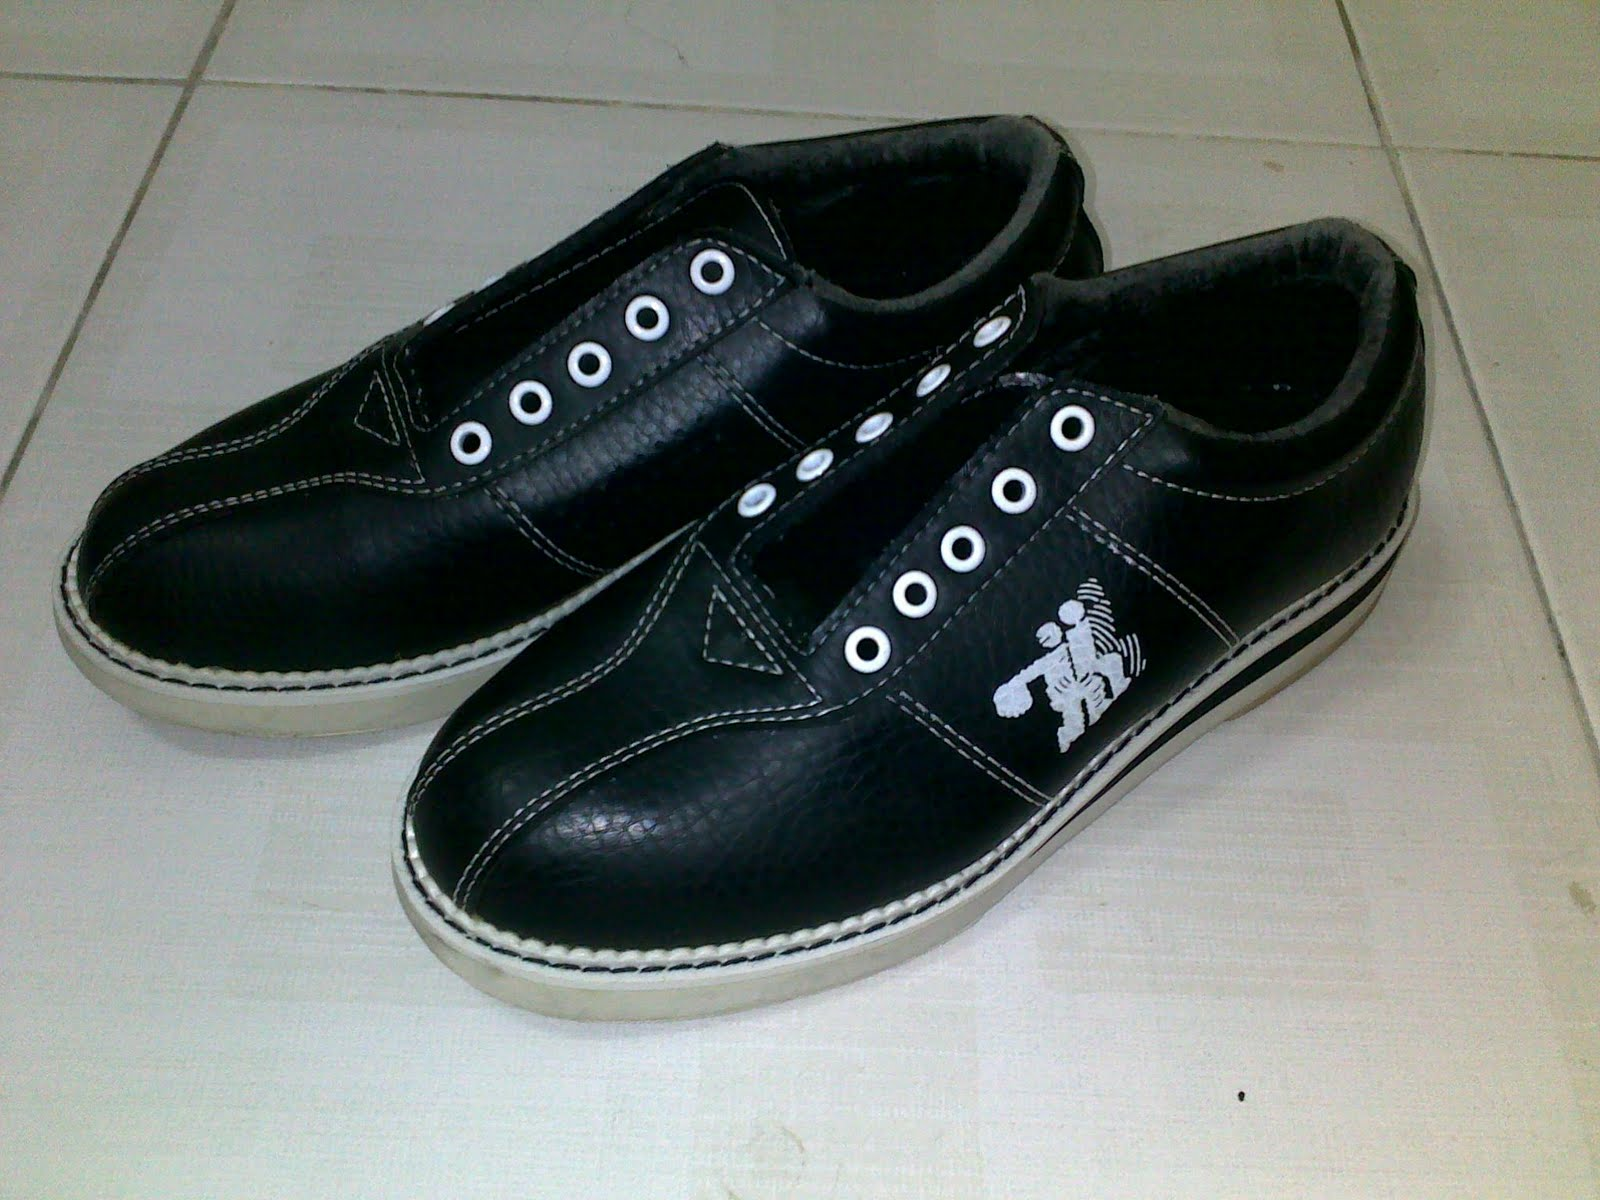 Bowling Shoes Online Malaysia